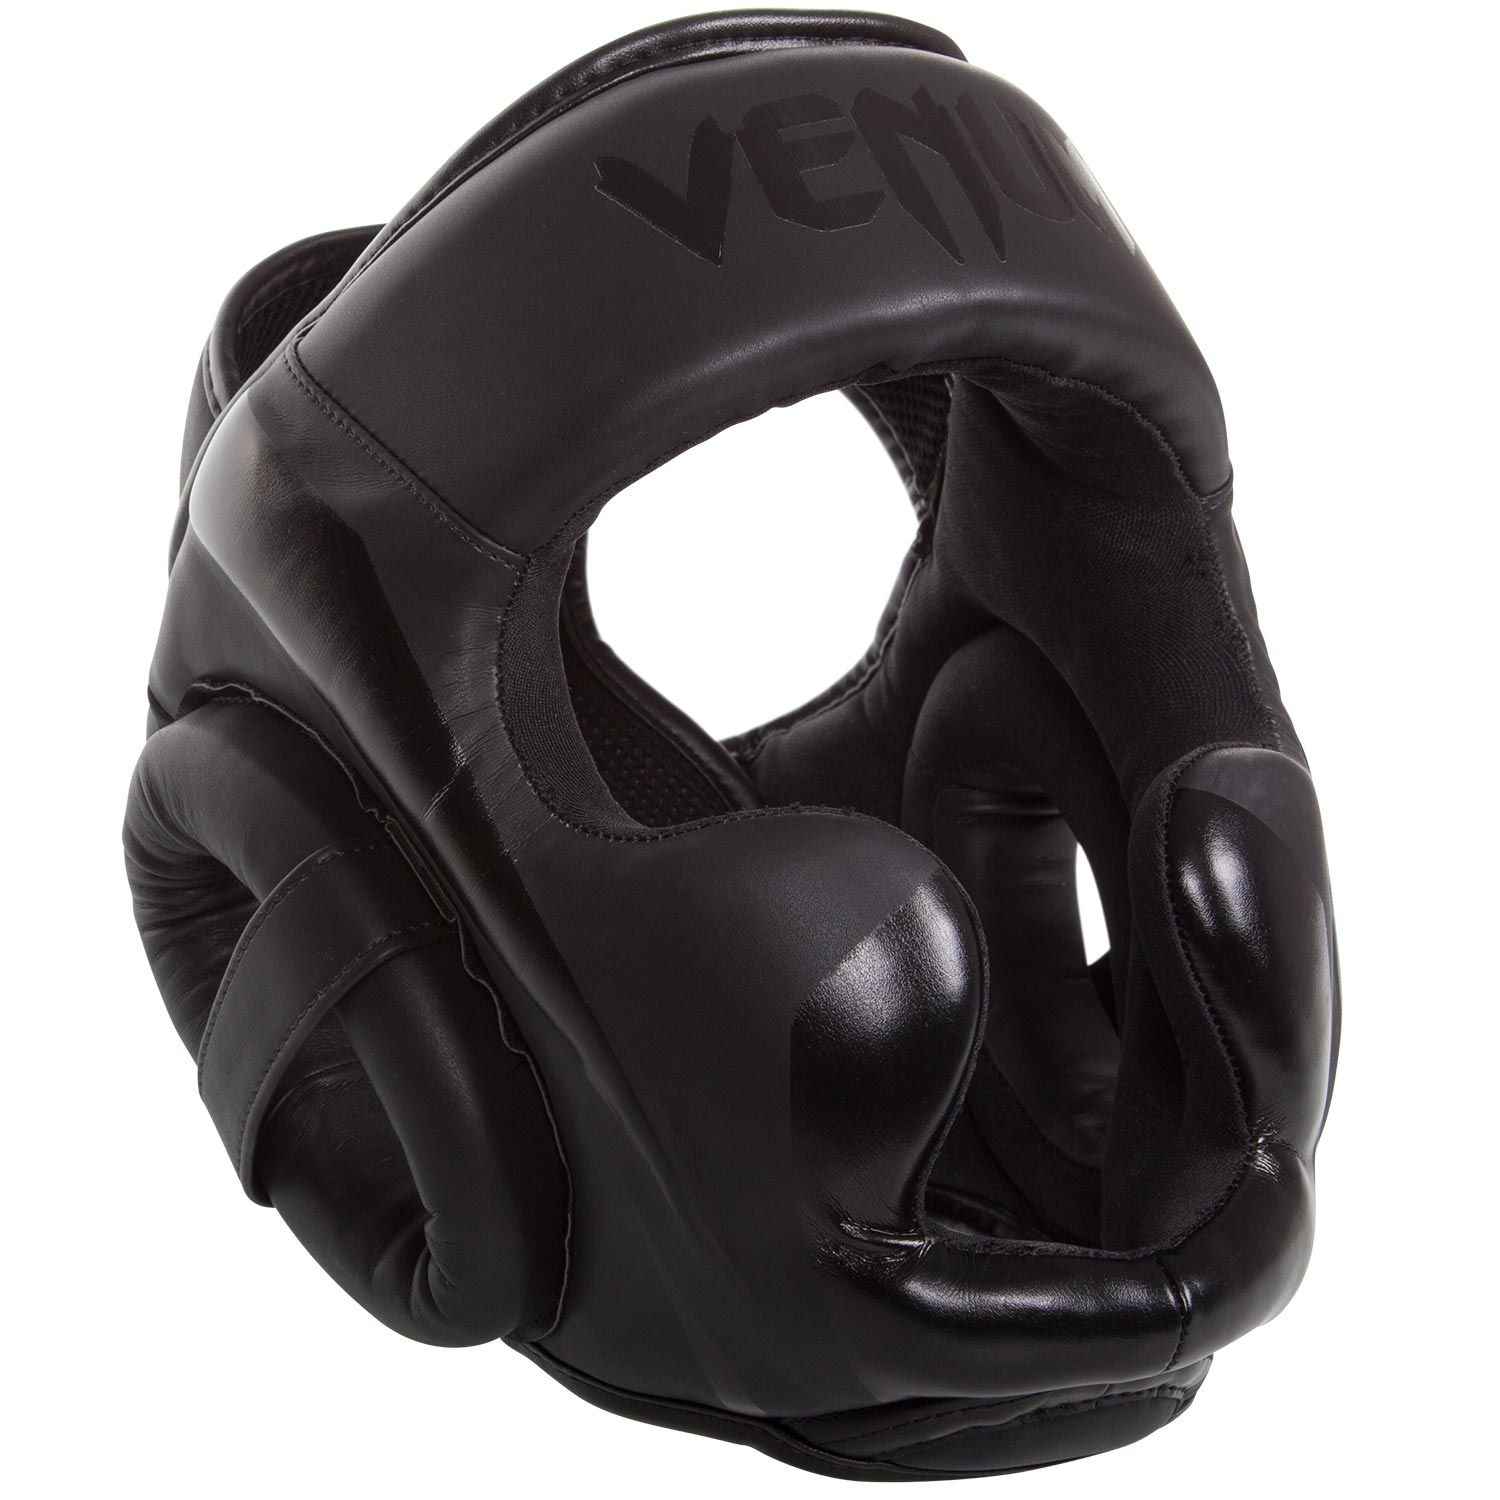 Venum Elite Headgear - Black